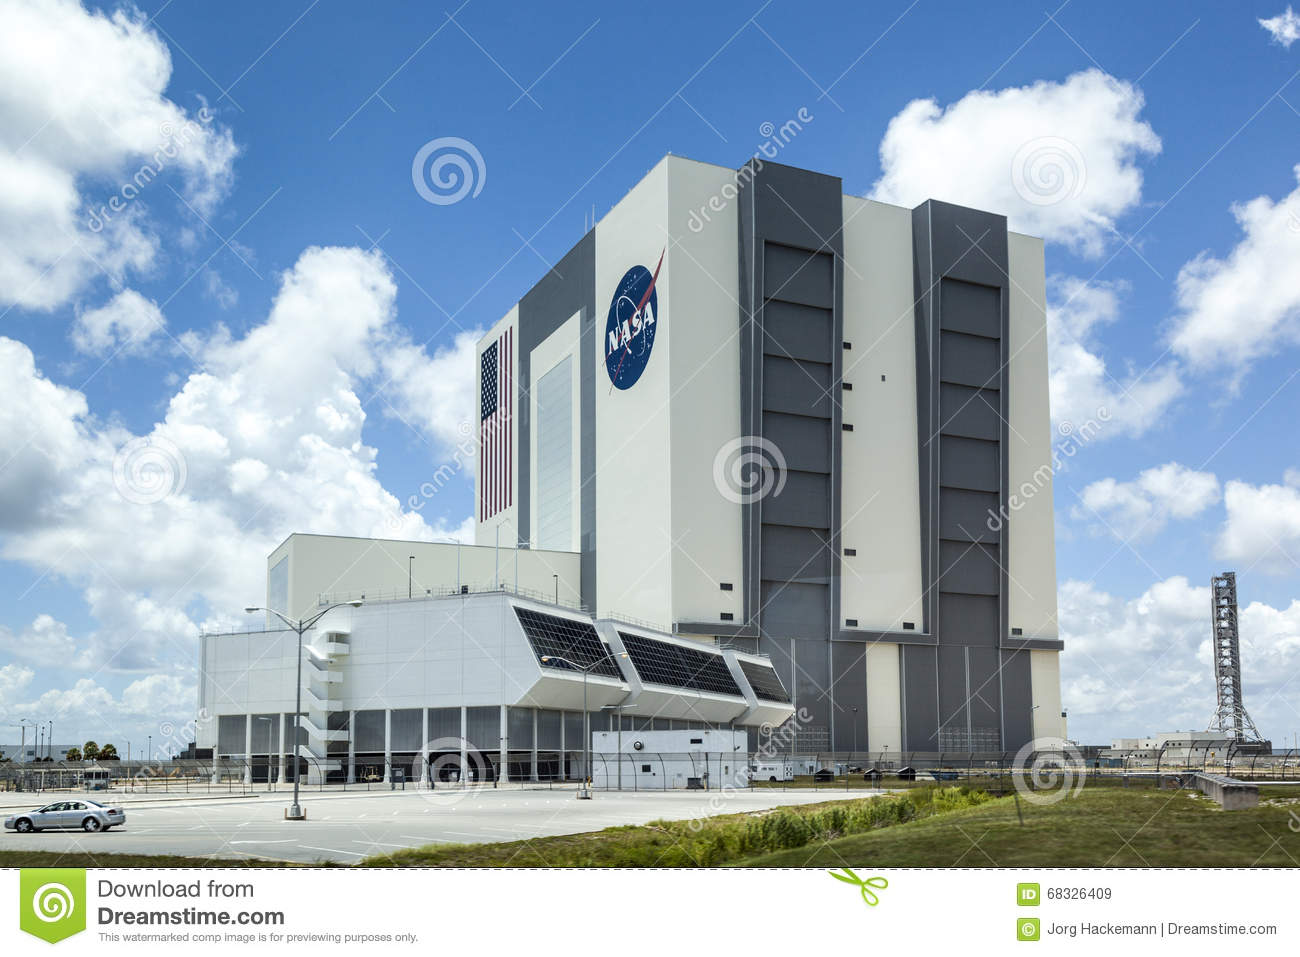 Le b timent d 39 assembl e de v hicule la nasa kennedy for Image batiment